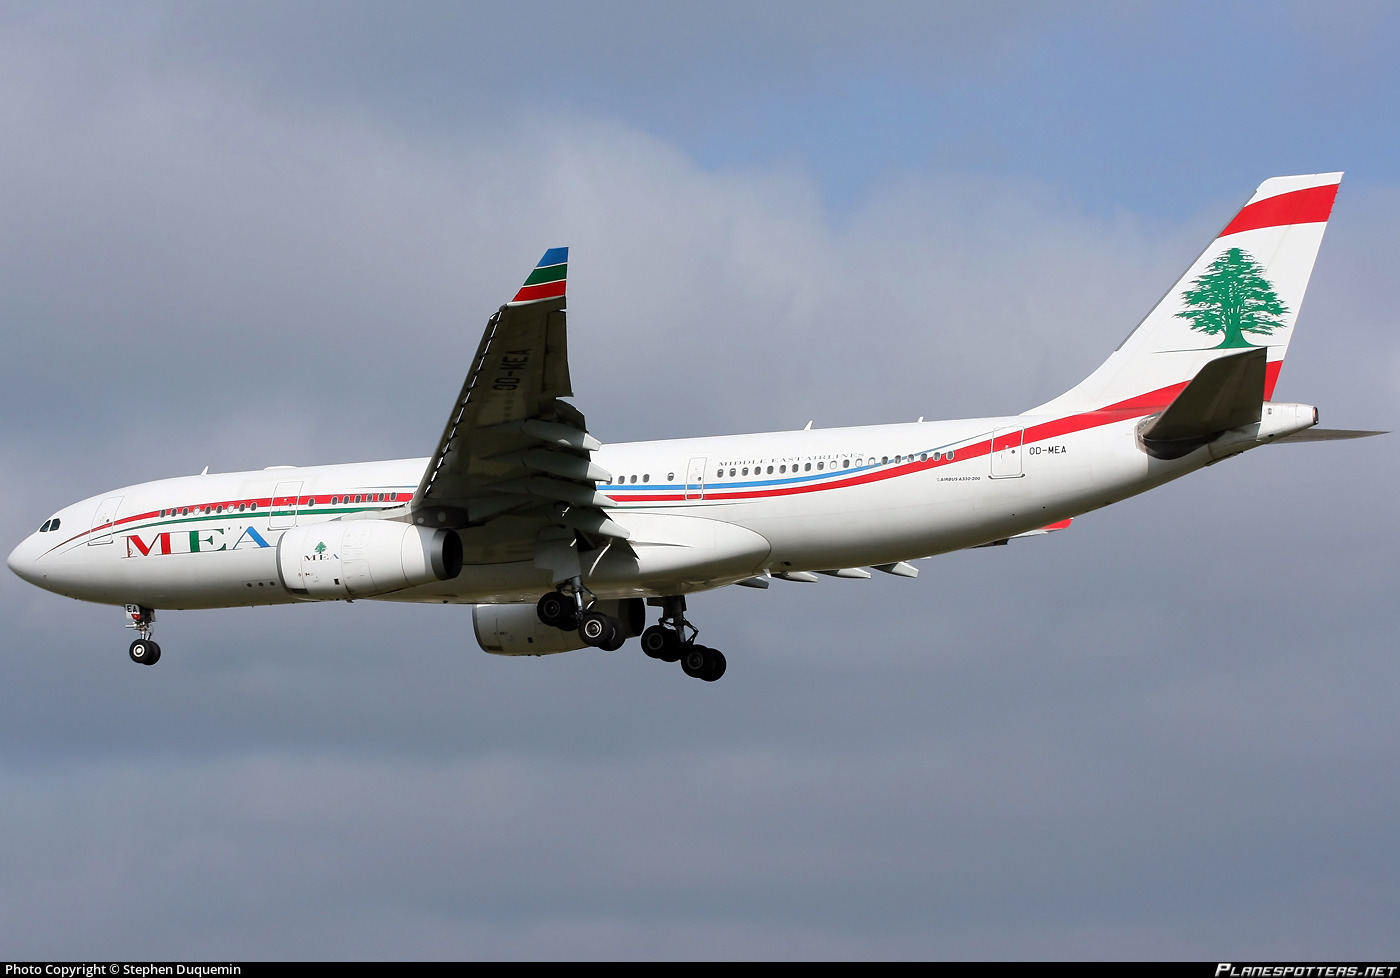 MEA Middle East Airlines - Airbus A330-200 (OD-MEA) airplane OD